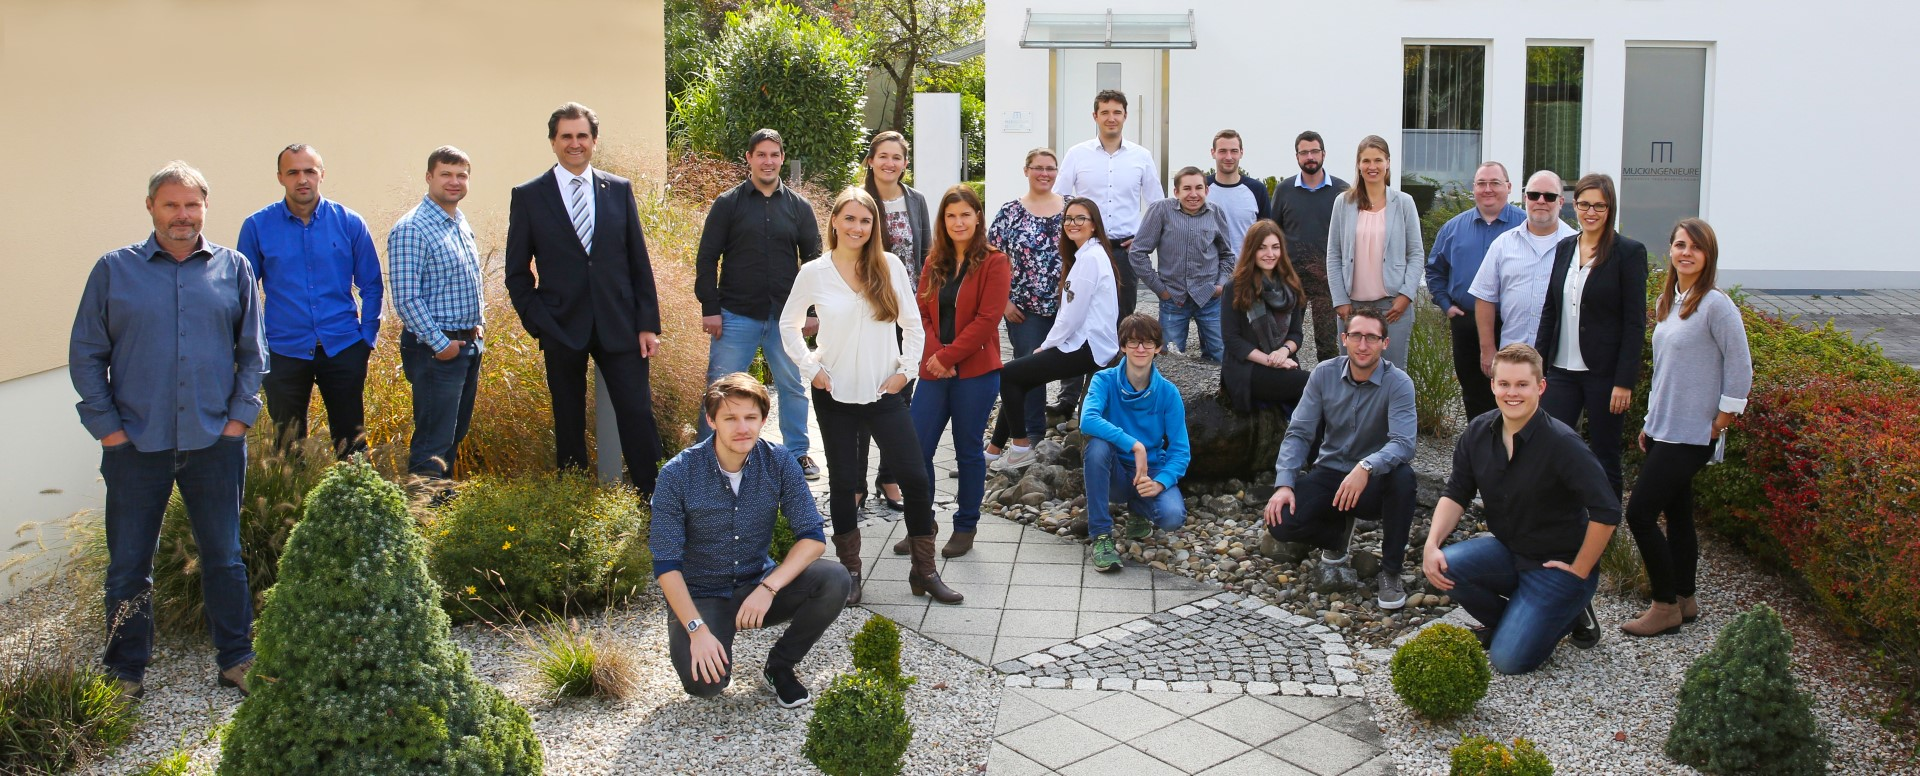 Das Team von MUCKINGENIEURE Innovative Tragwerksplanung in Ingolstadt